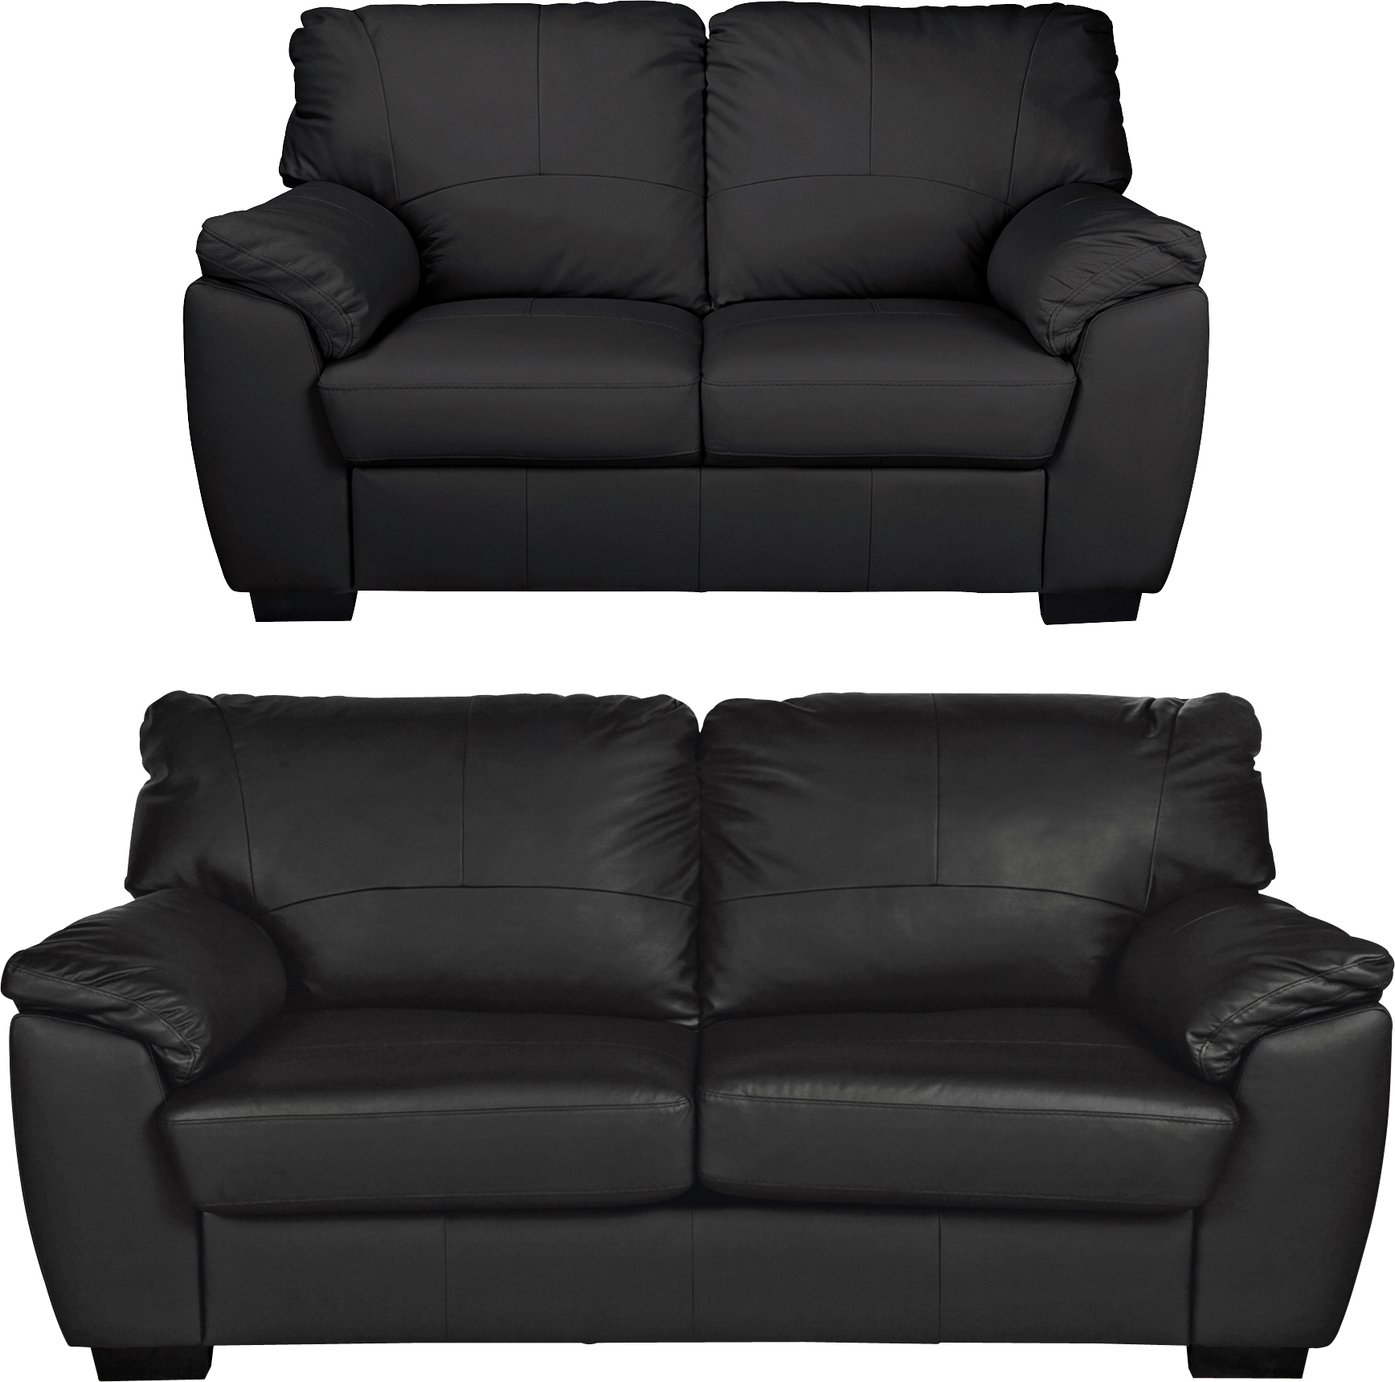 3 seater sofa black leather hot pink sleeper buy argos home milano 2 and